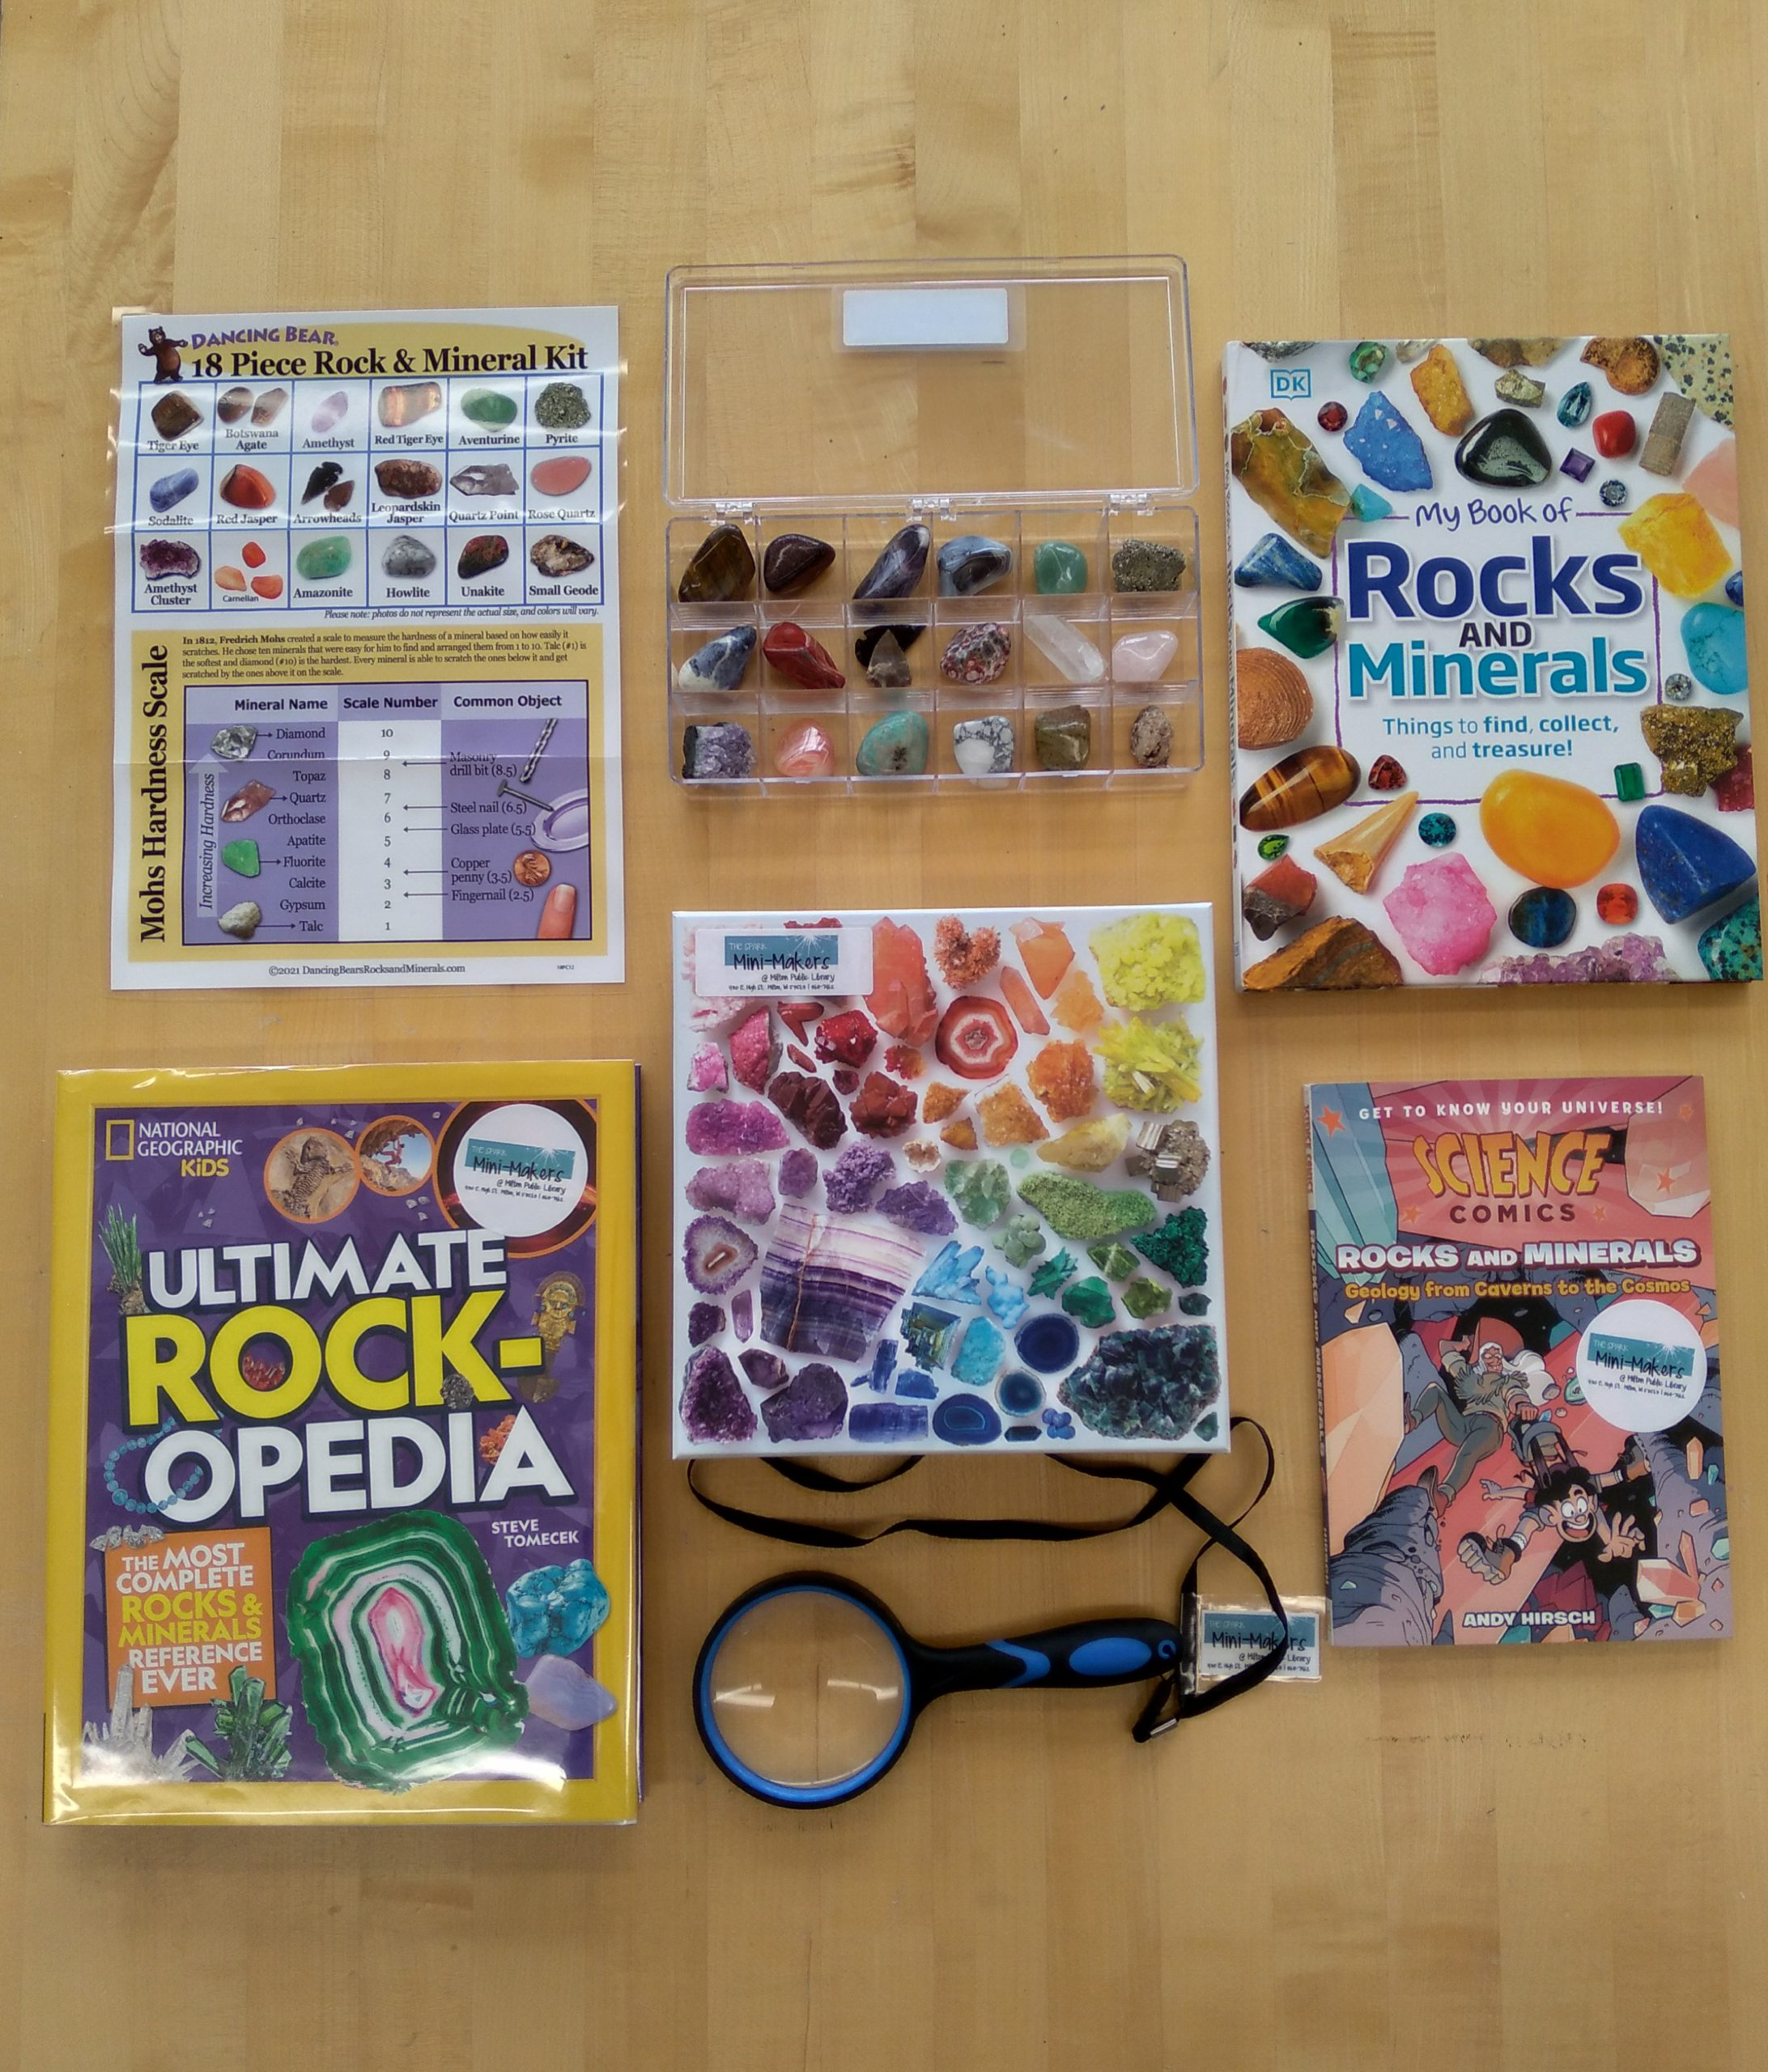 Contents of Rocks and Minerals Checkout Kit